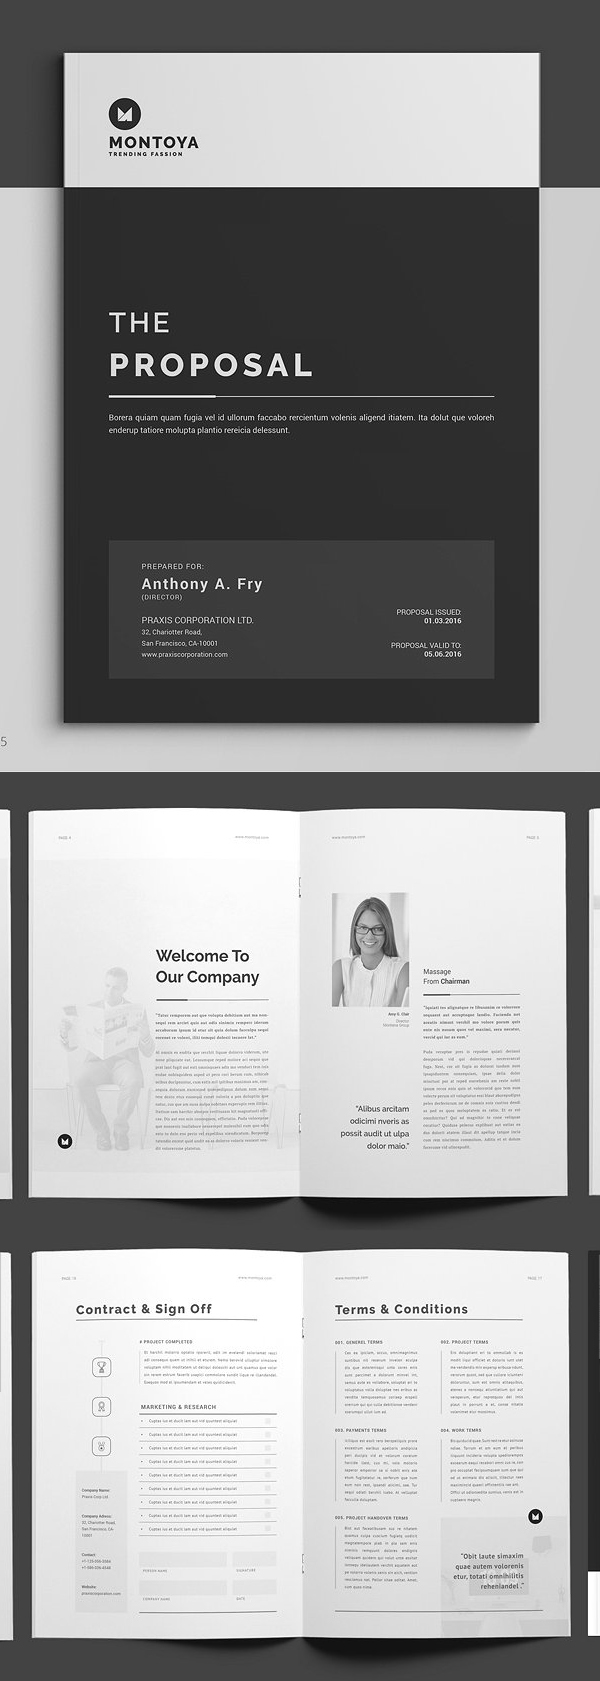 Professional Business Proposal Templates Design - 30